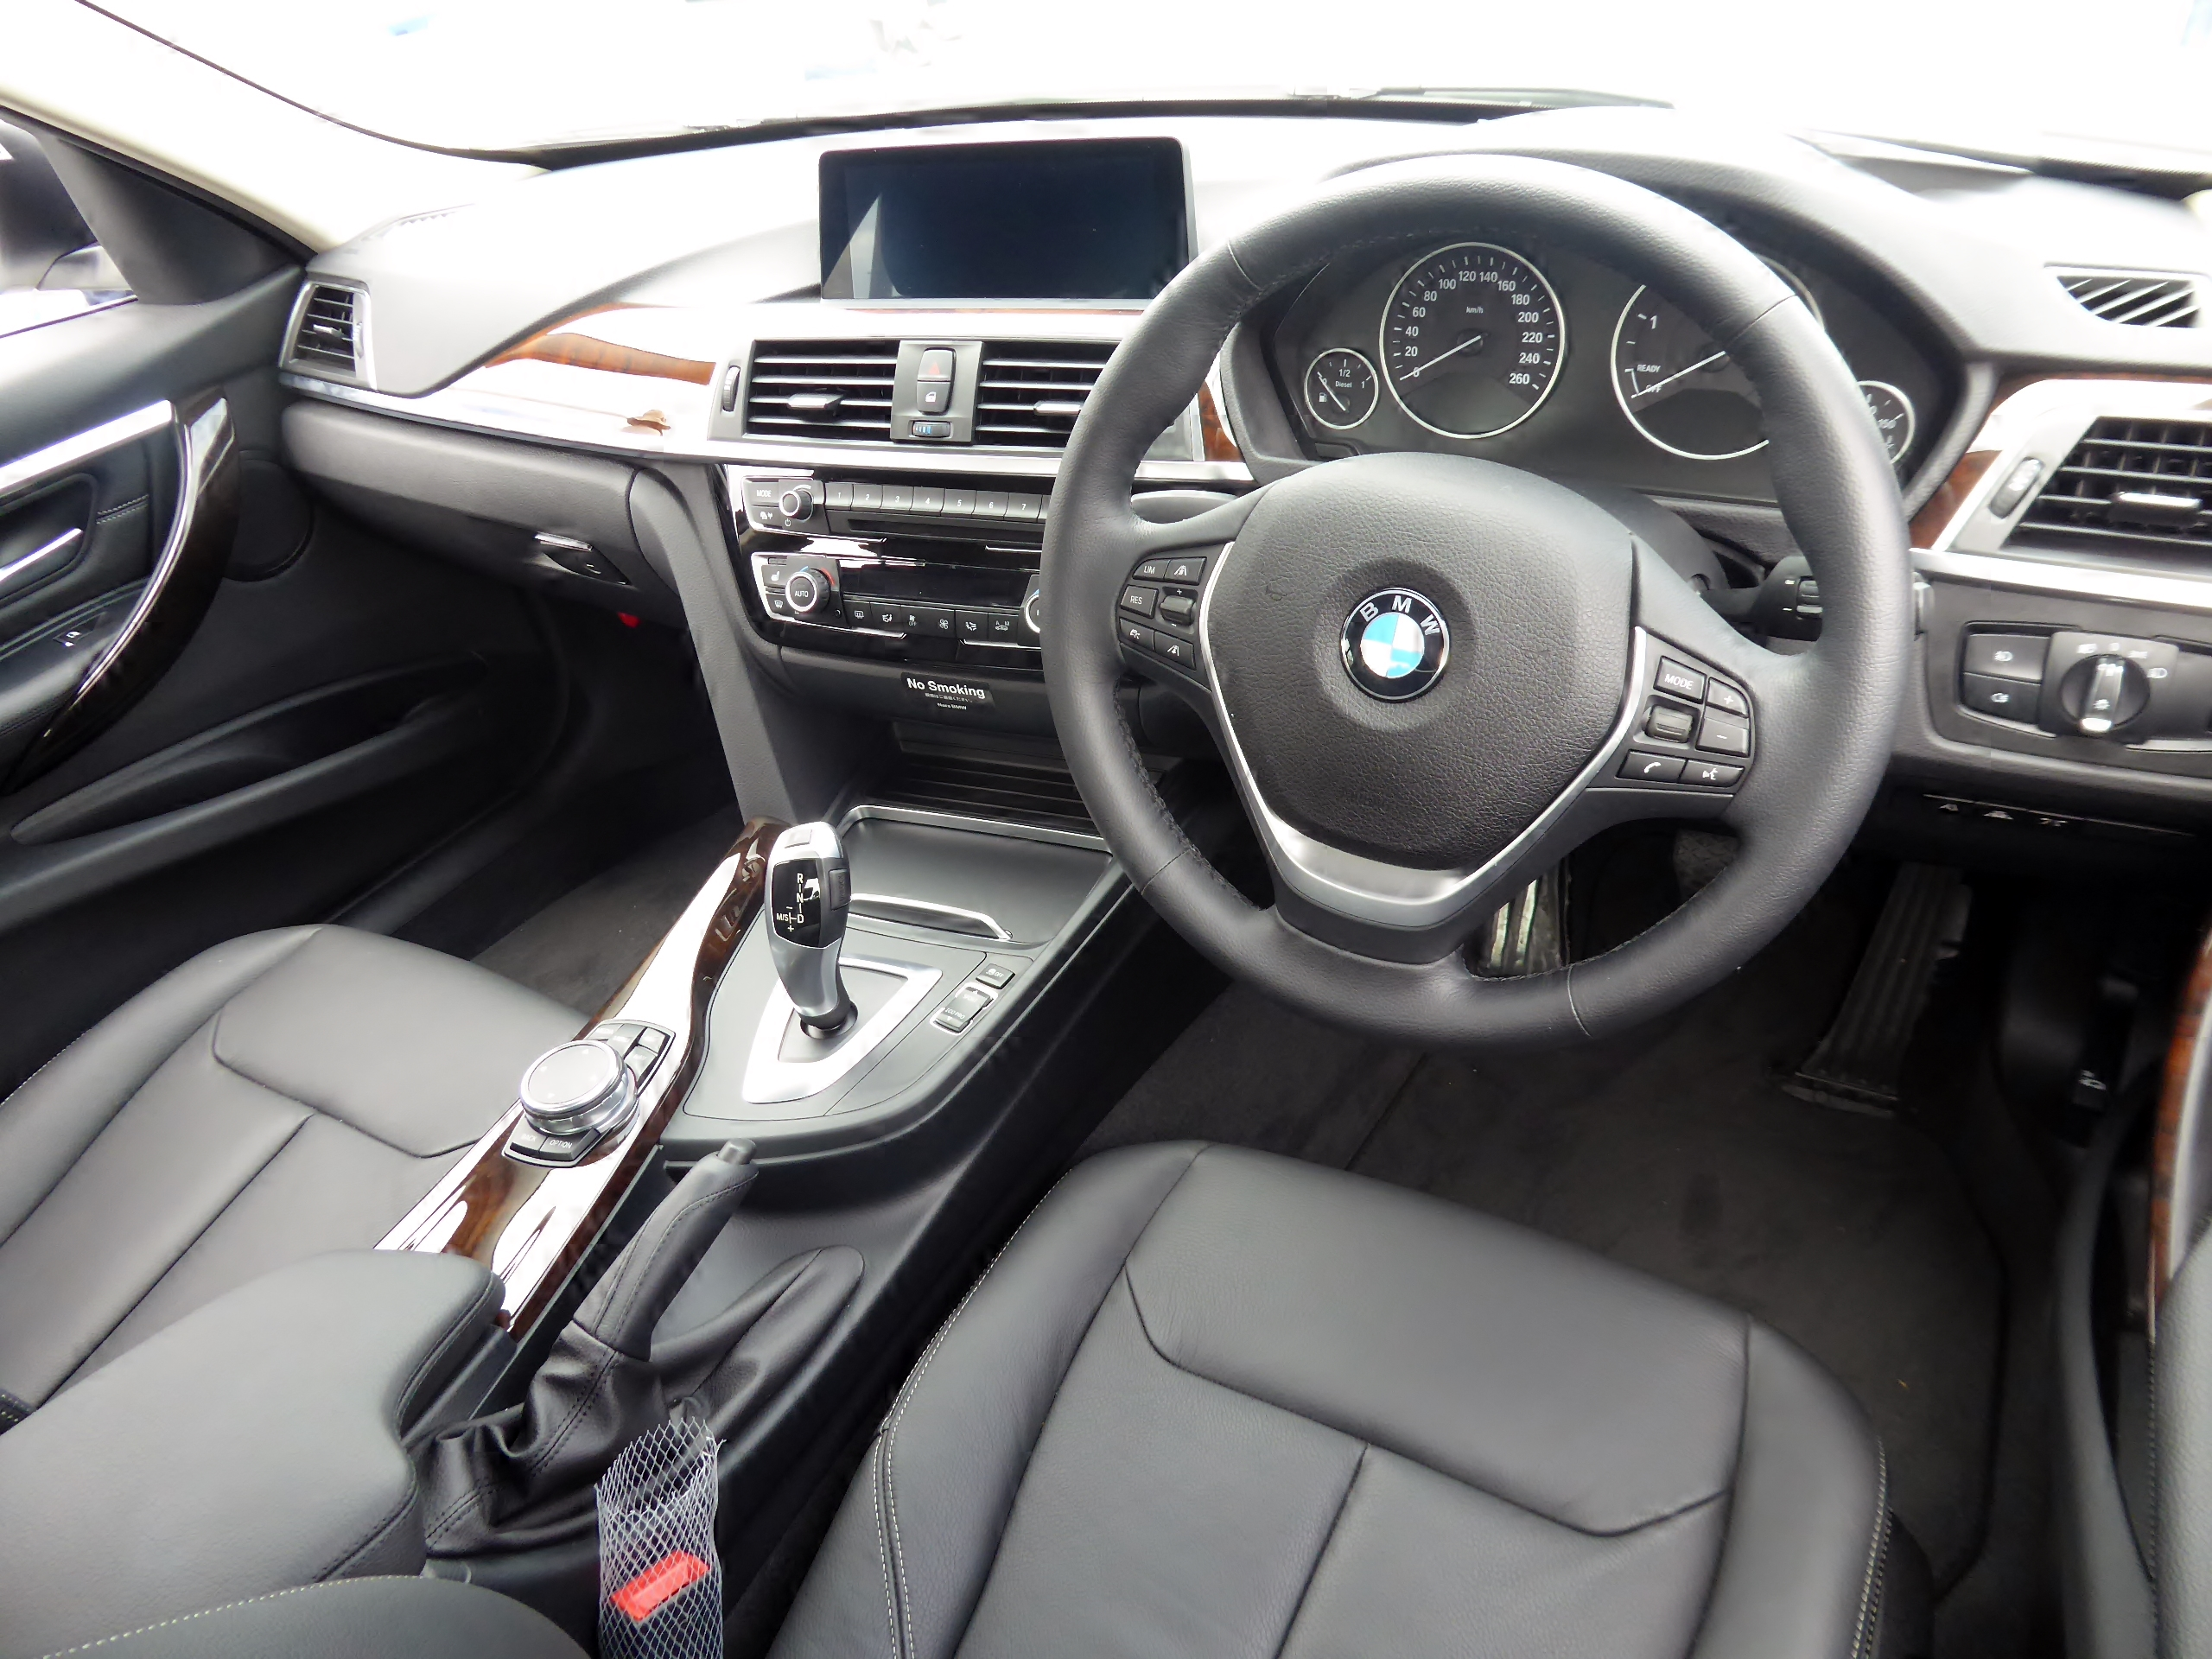 F30 Interieur File Bmw 320d Luxury F30 Interior Jpg Wikimedia Commons